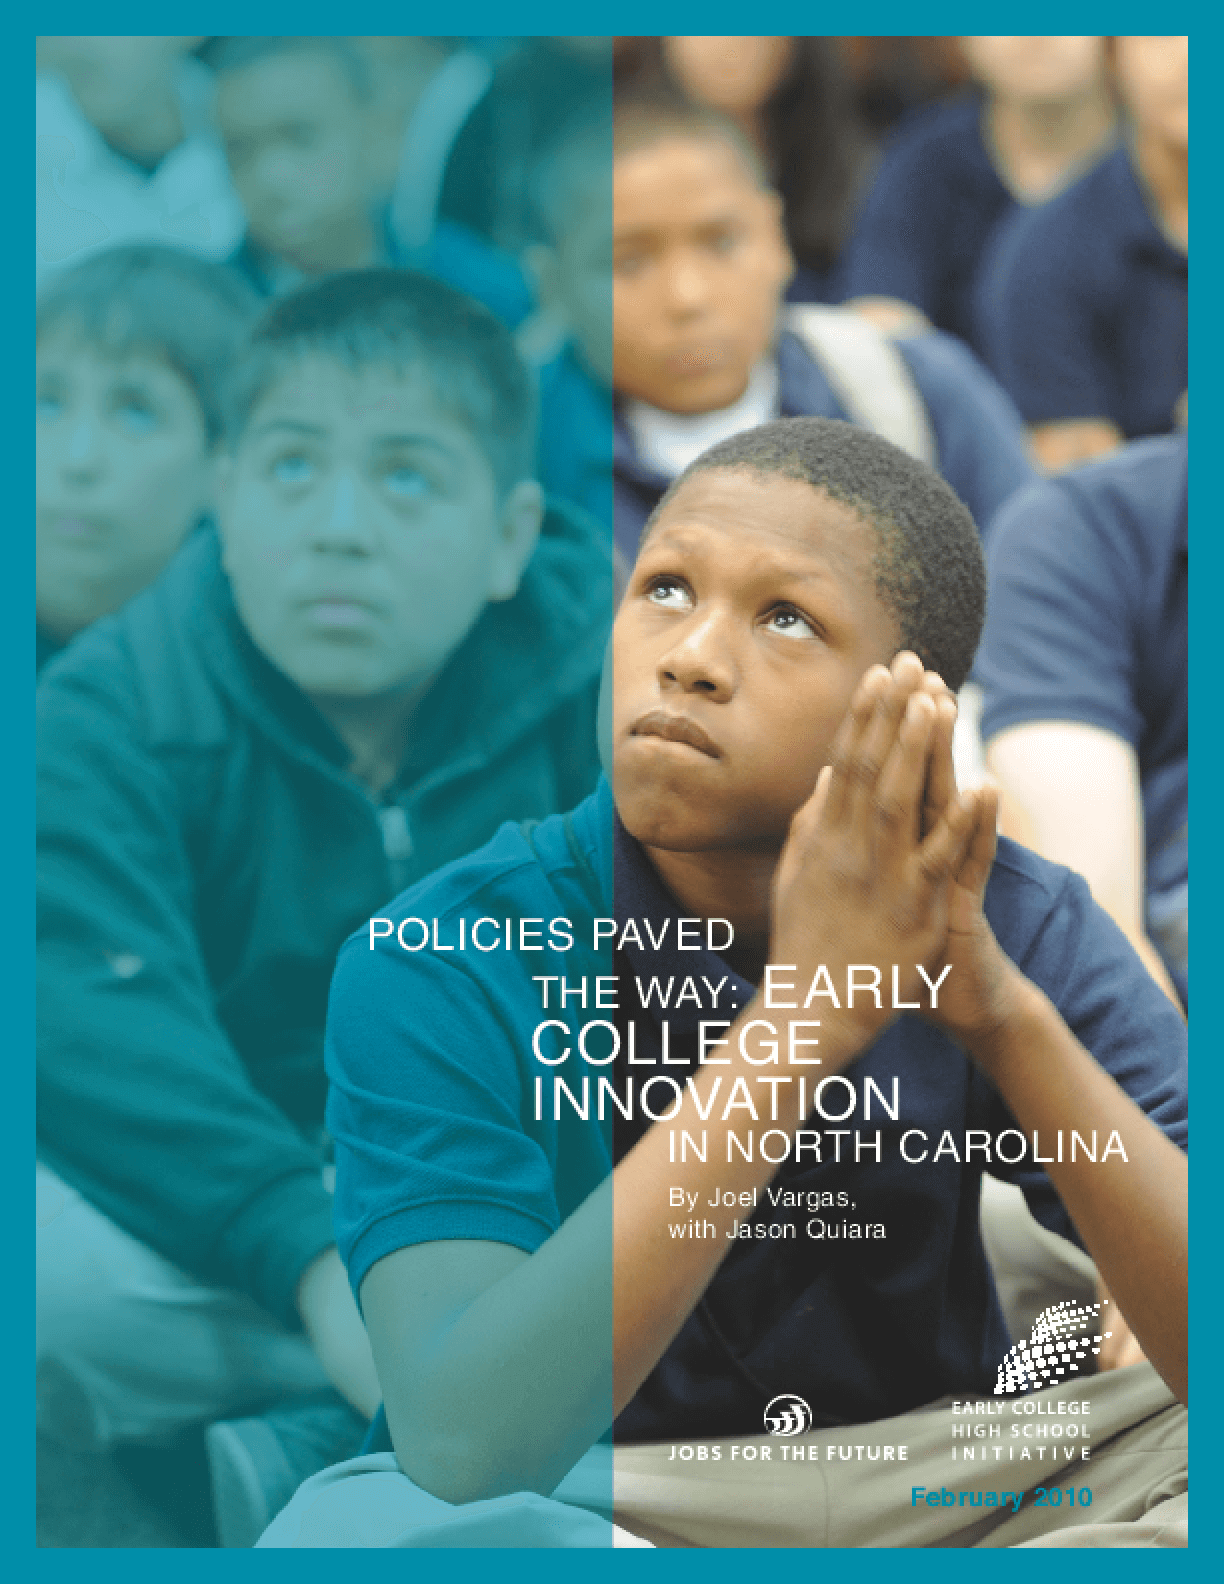 Policies Paved the Way: Early College Innovation in North Carolina